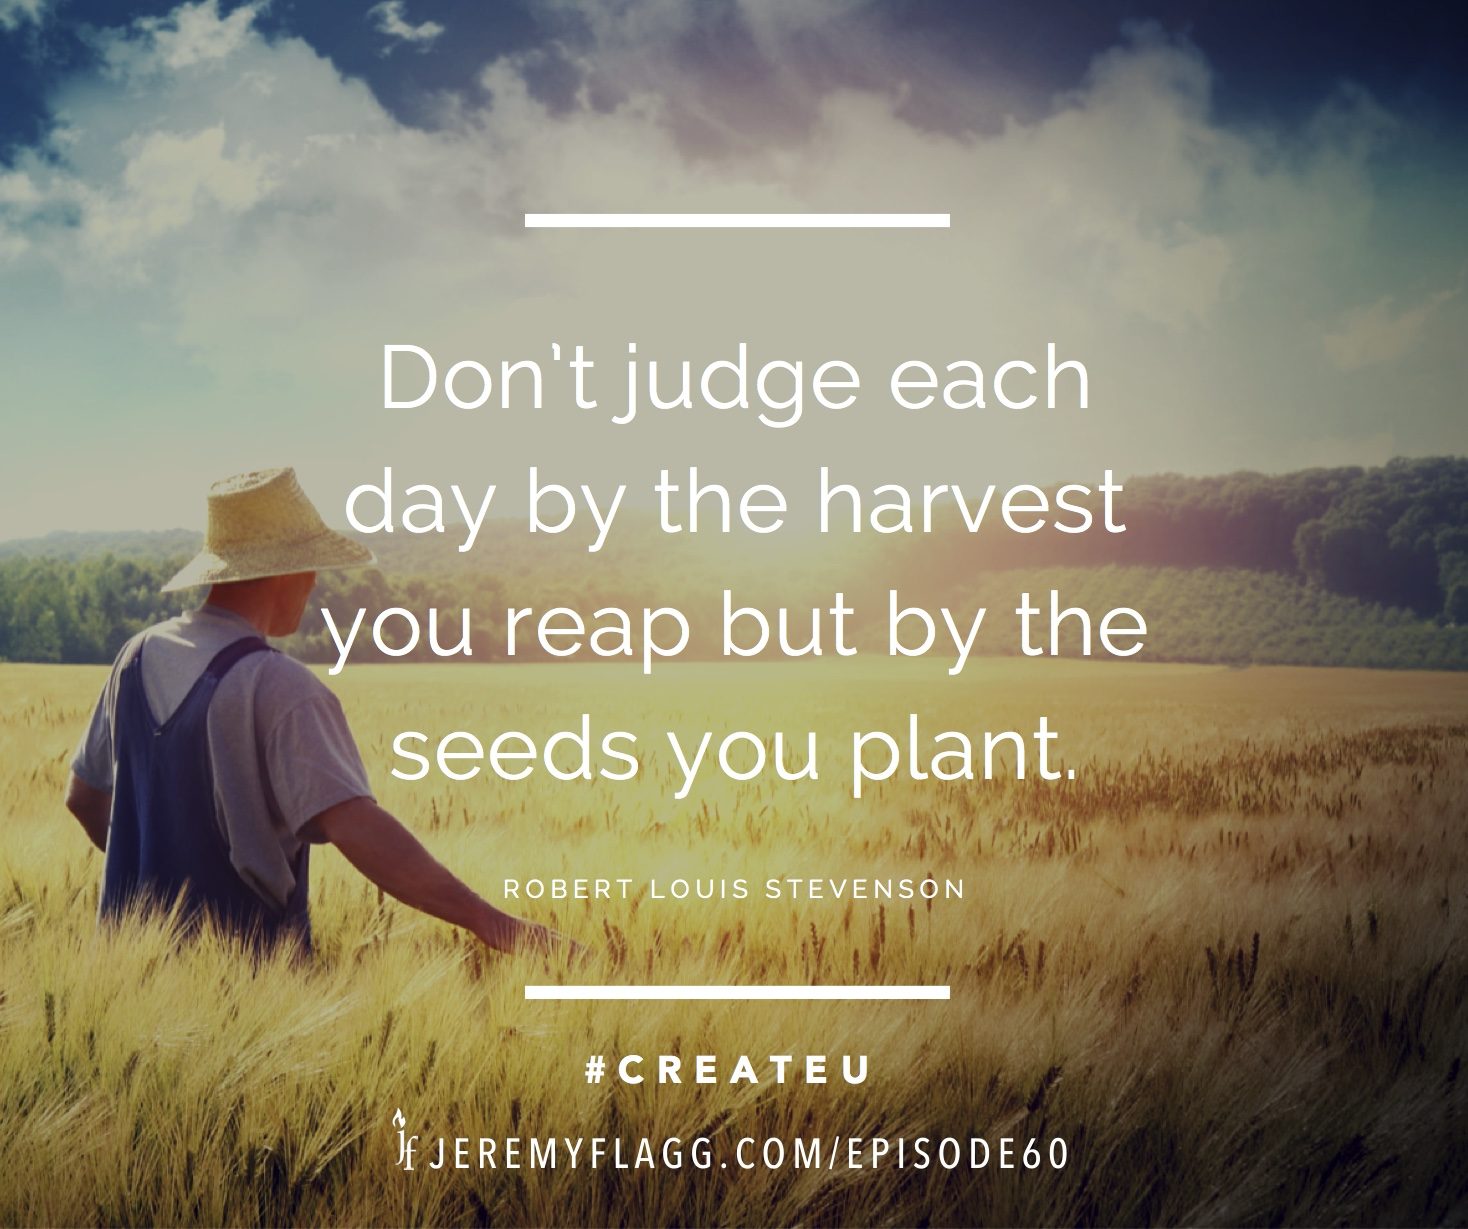 Seeds-you-plant-quote-Robert-Louis-Stevenson-FB